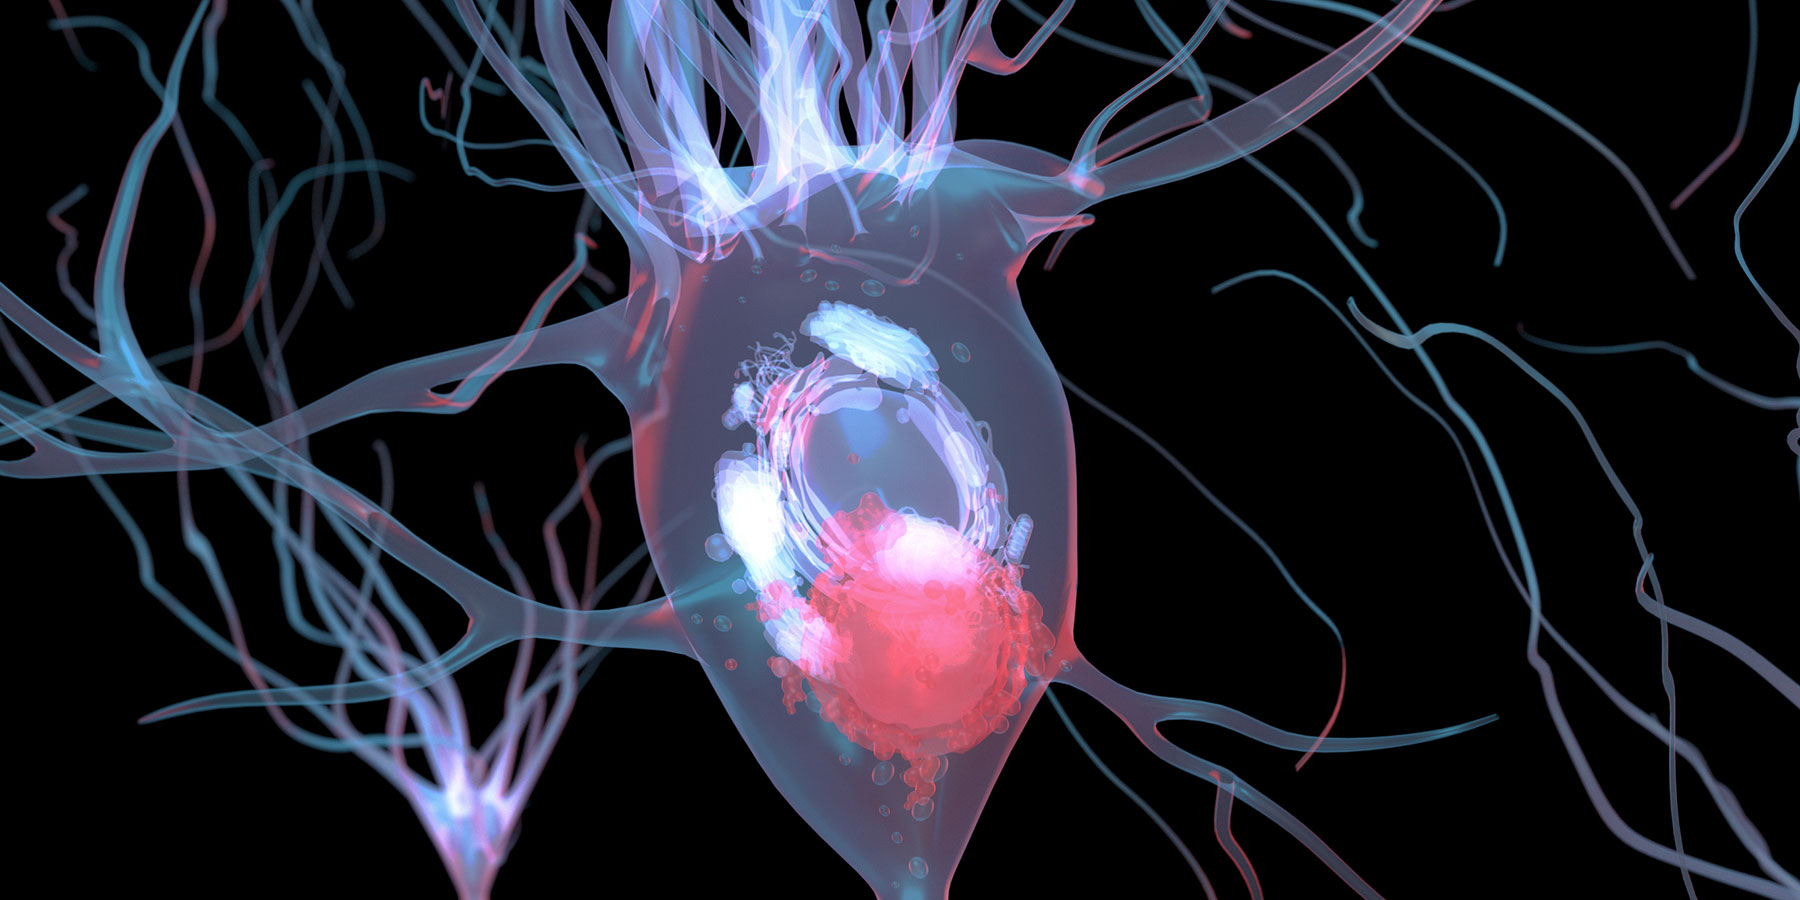 A first-in-class diagnostic for Parkinson's disease